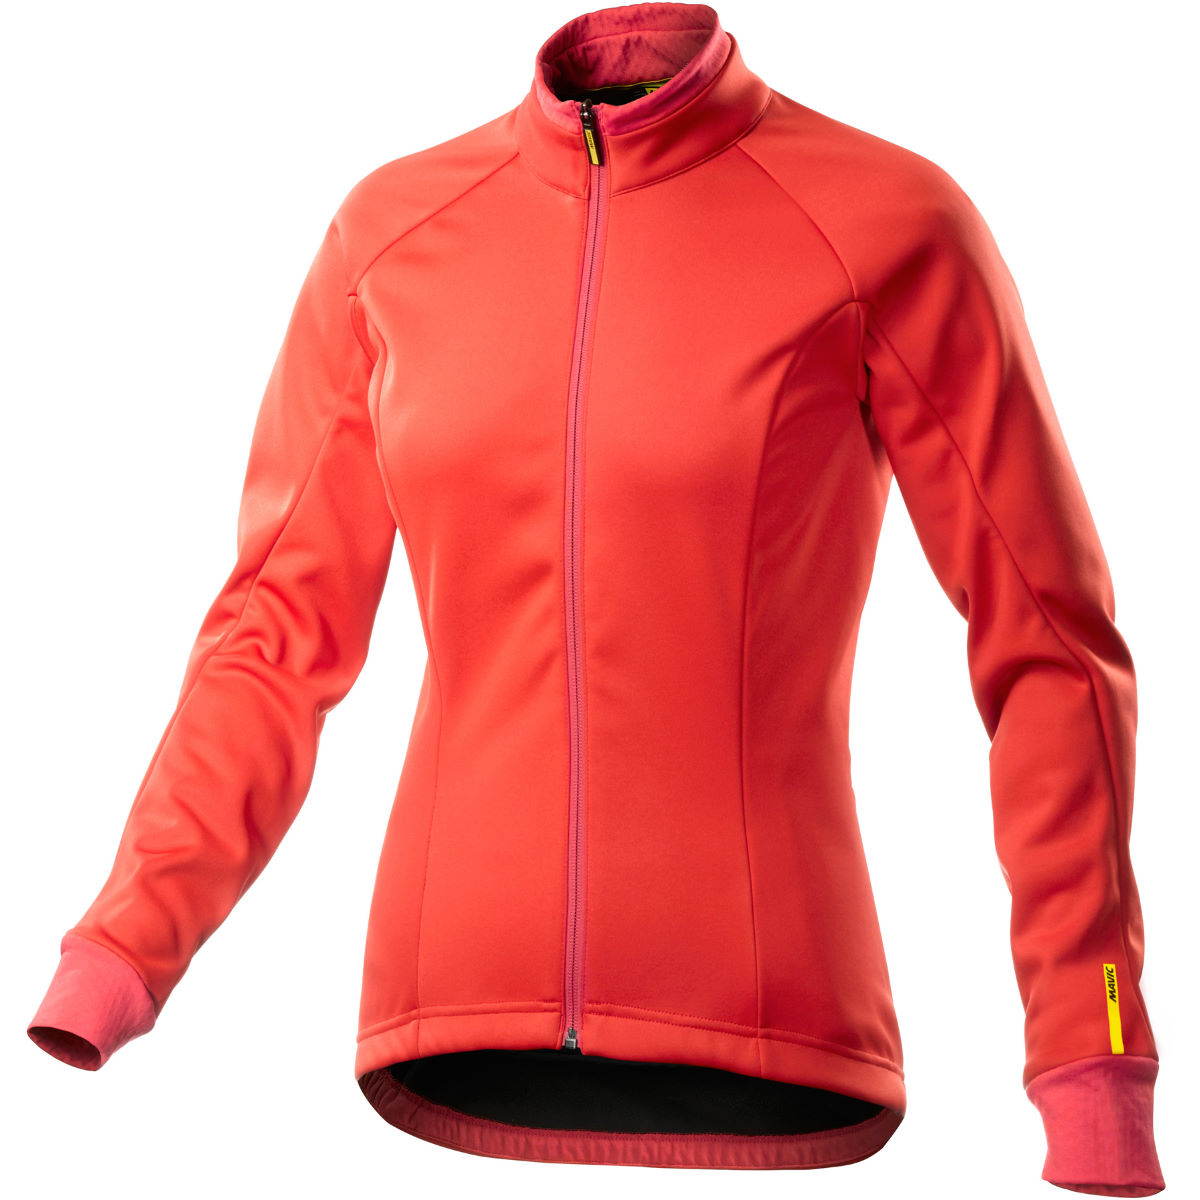 Veste Femme Mavic Aksium Thermo - S Racing Red Vestes